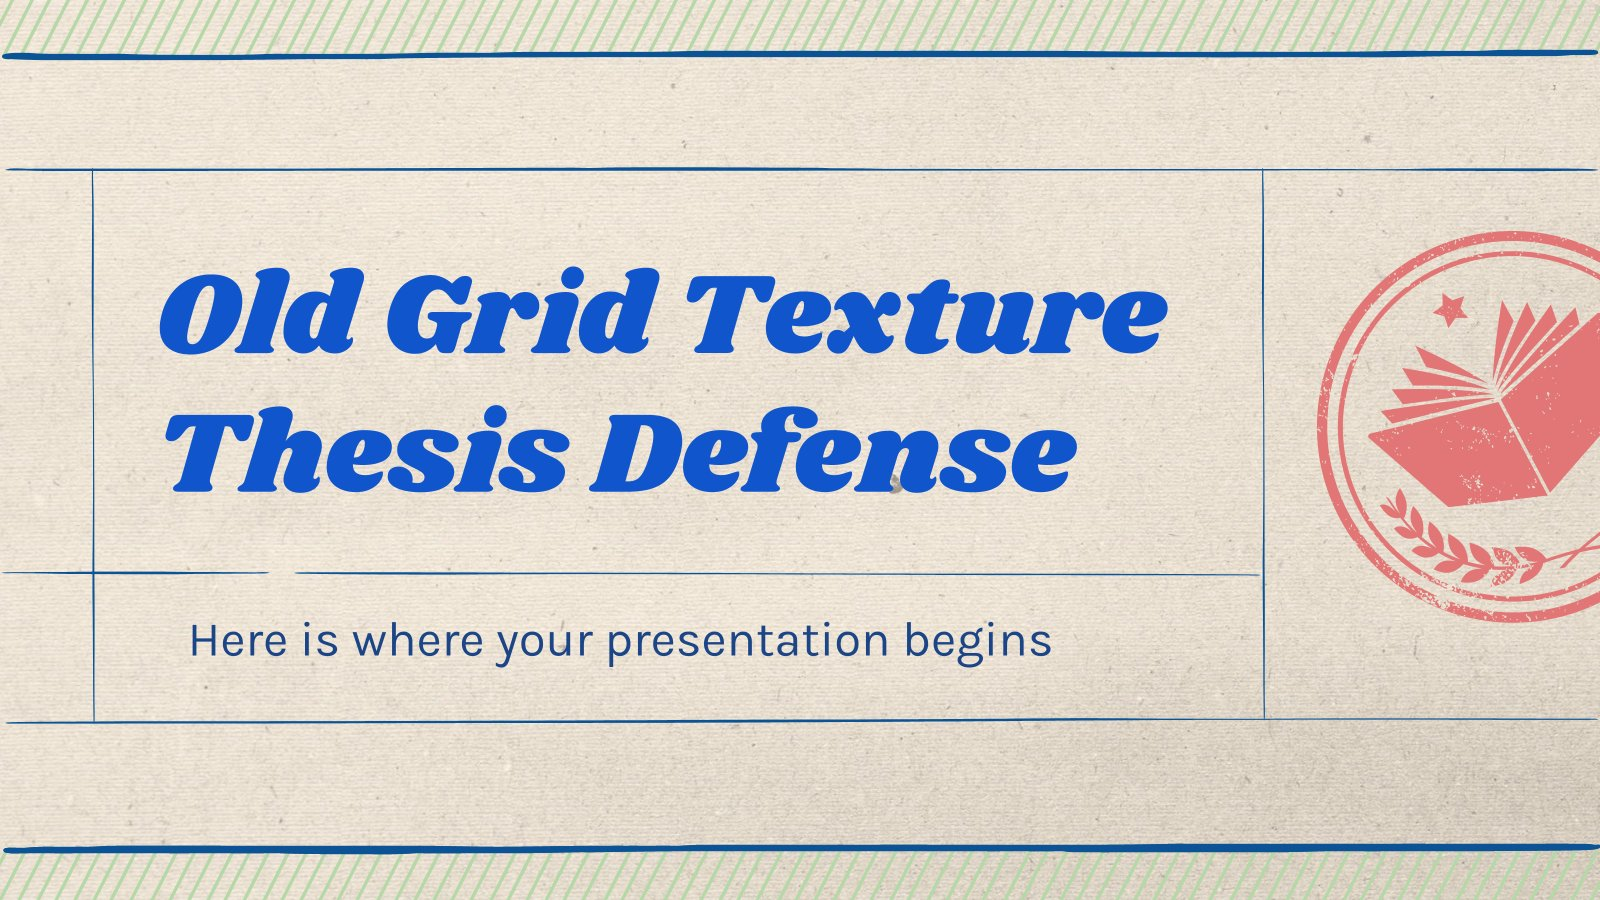 Old Grid Texture Thesis Defense presentation template